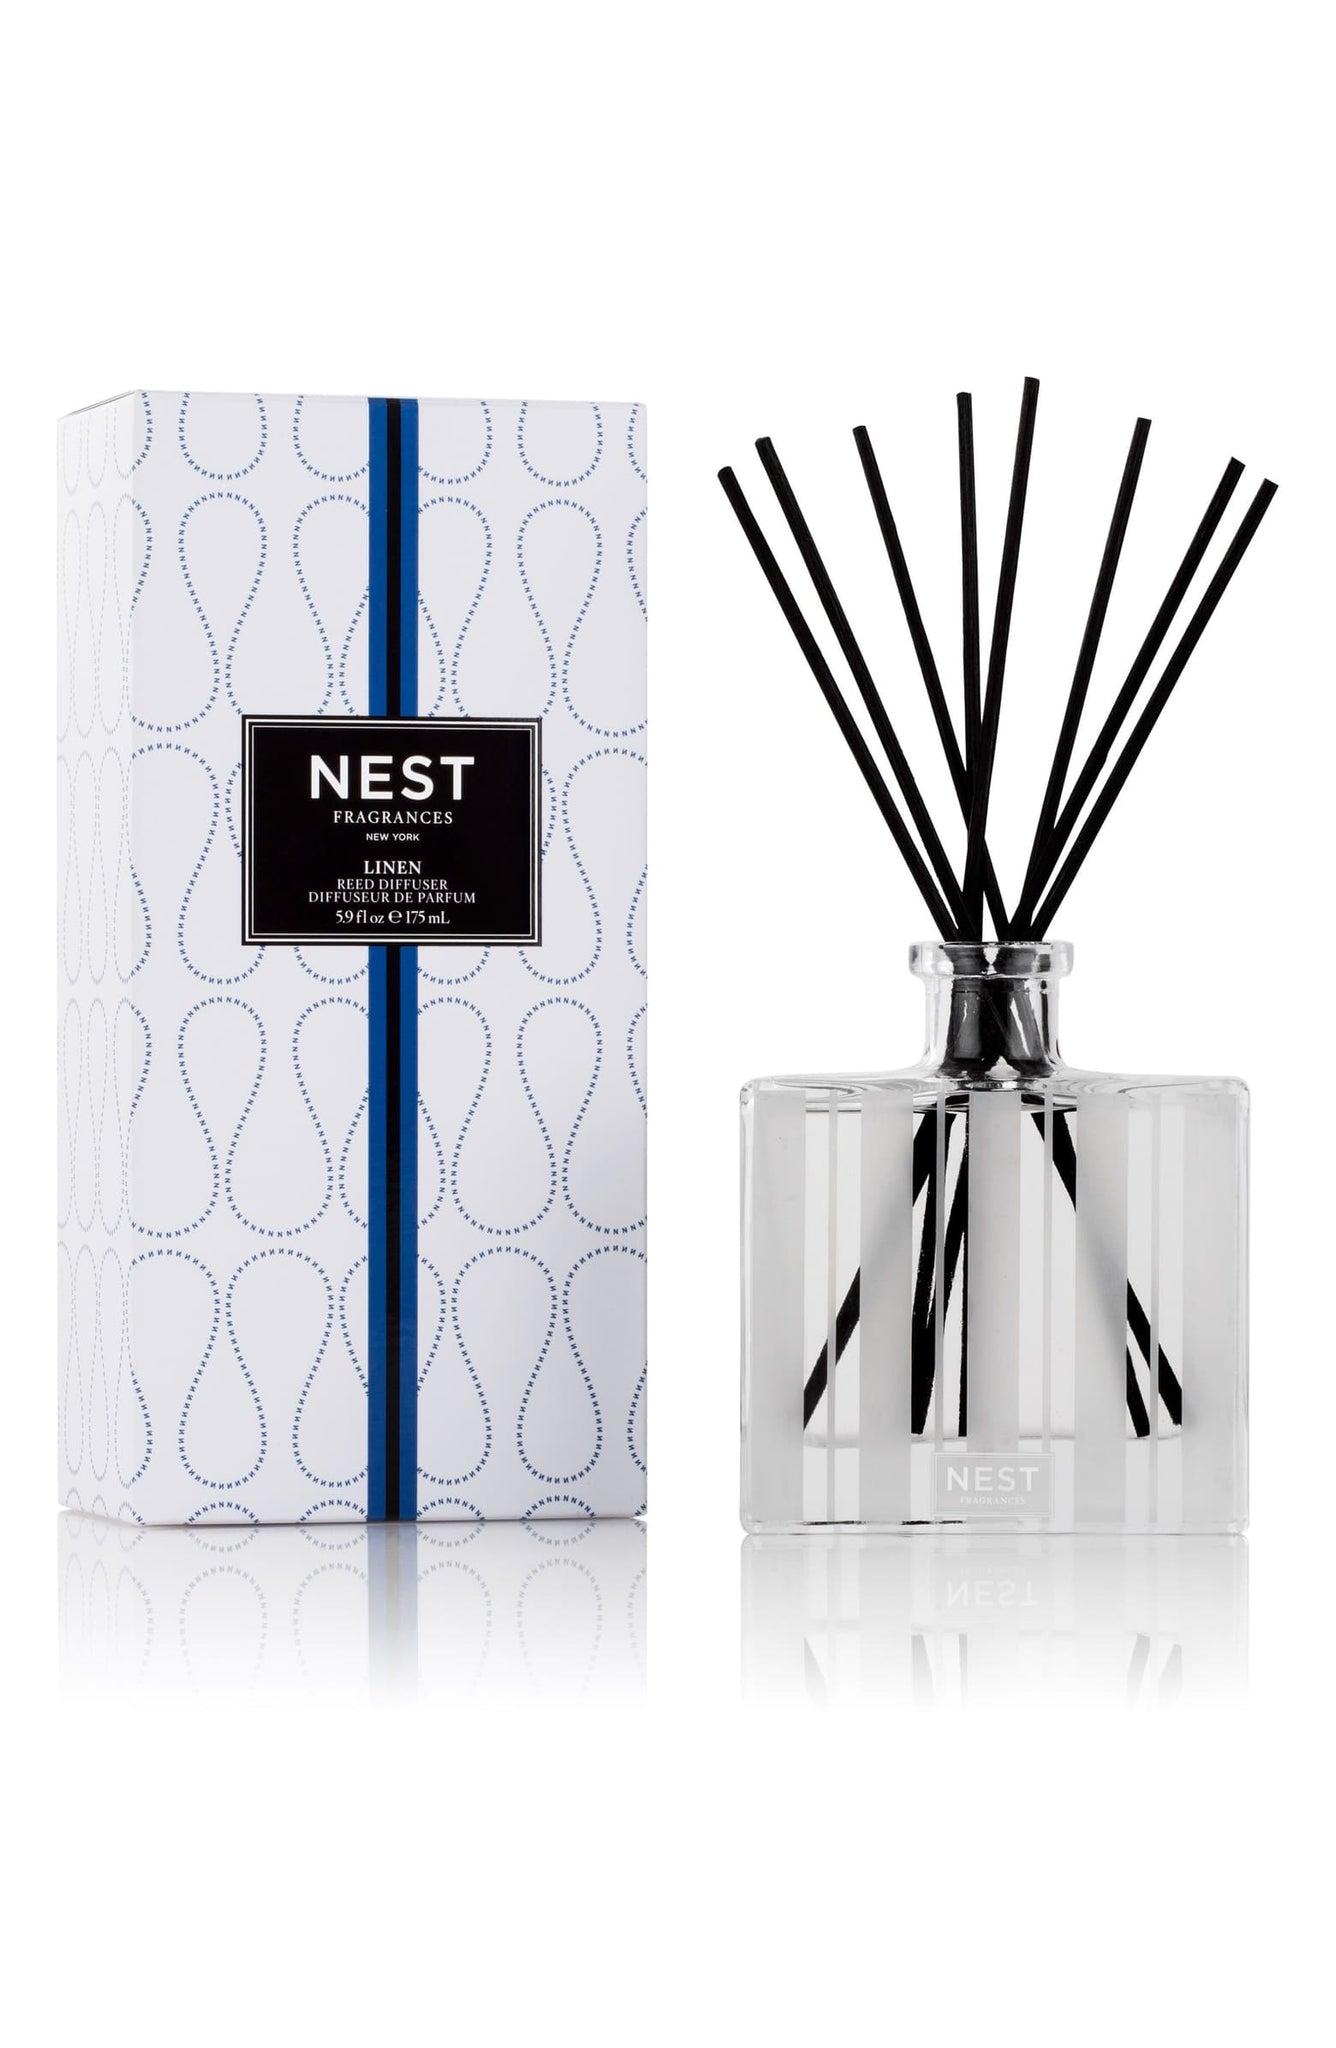 Nest Fragrances Linen Reed Diffuser